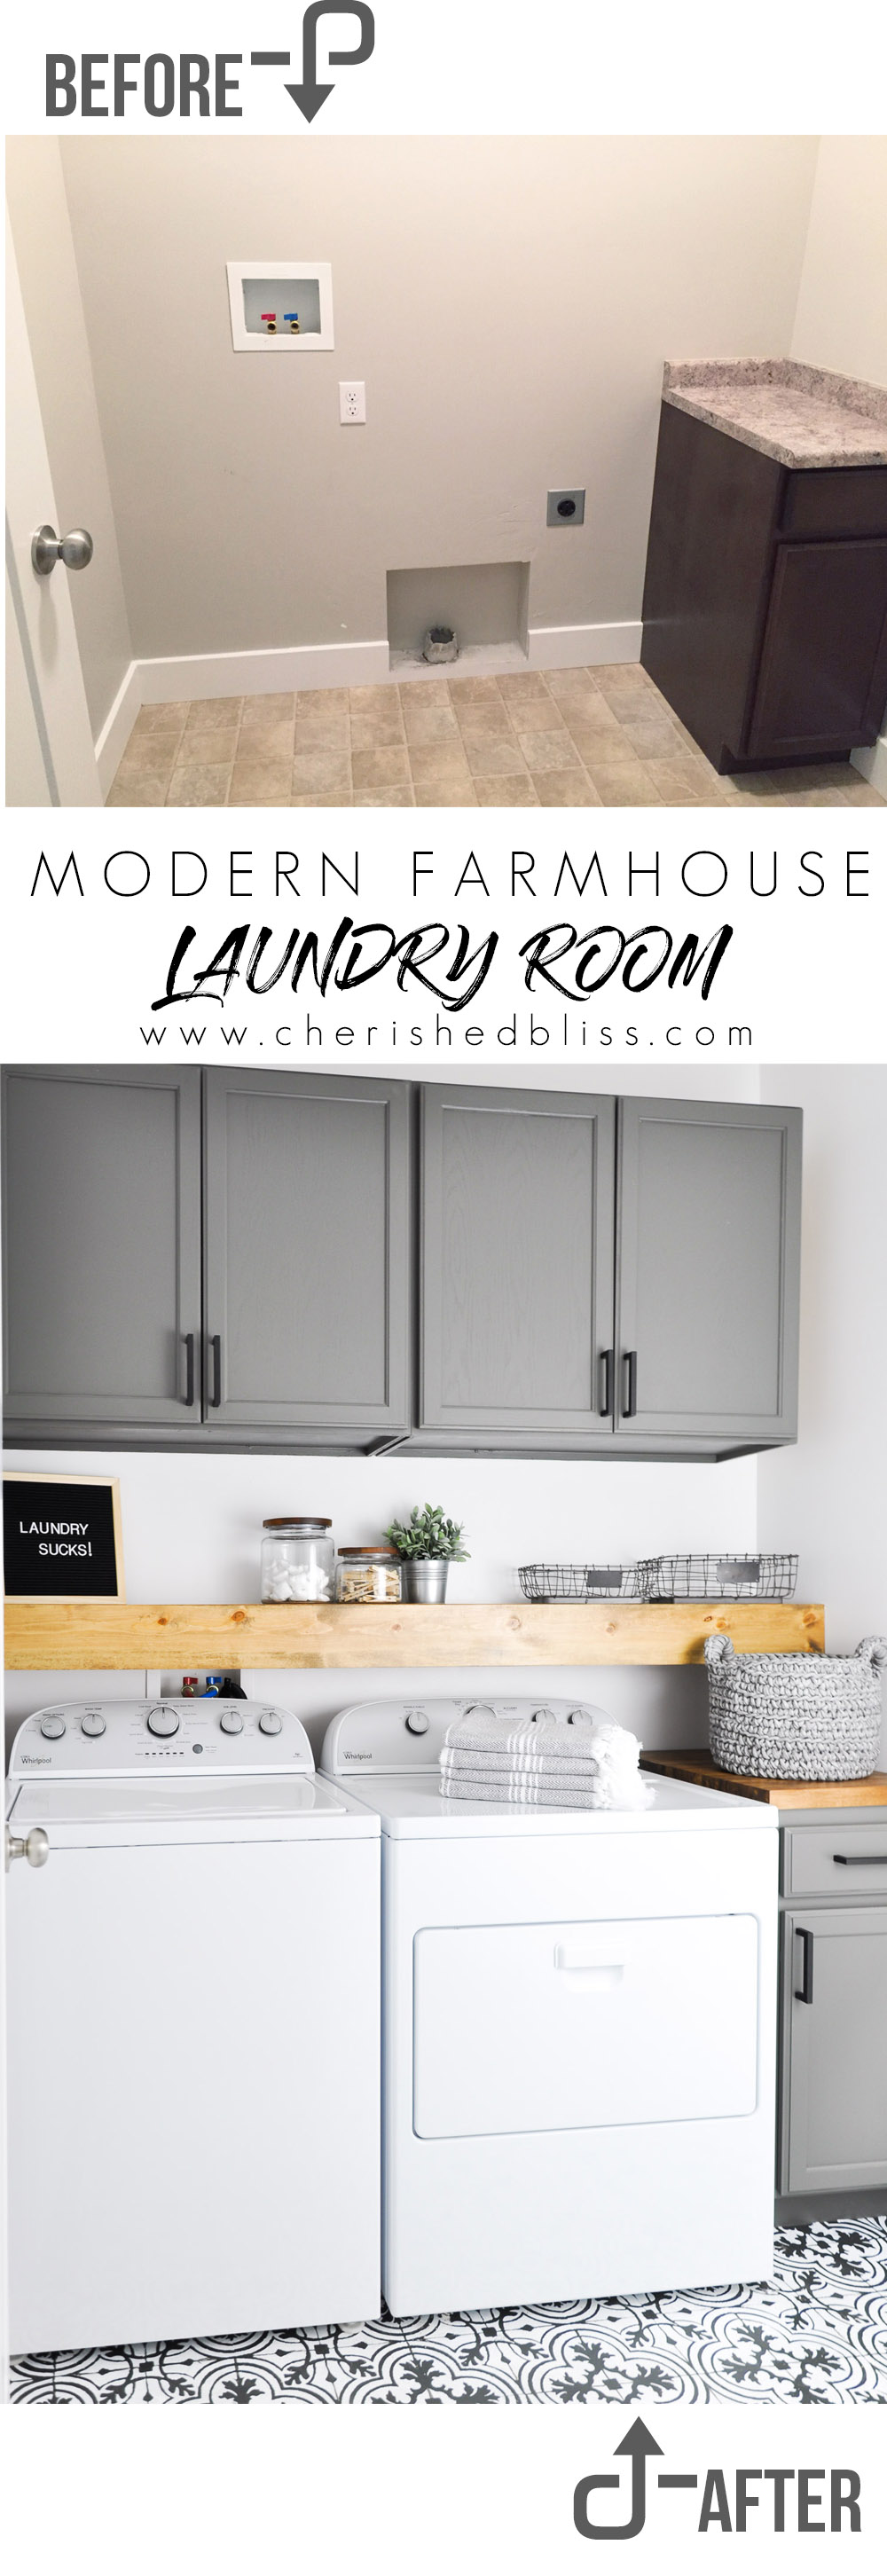 Do laundry in style in this Modern Farmhouse Laundry Room. Come see the transformation from builder grade to gorgeous on a low